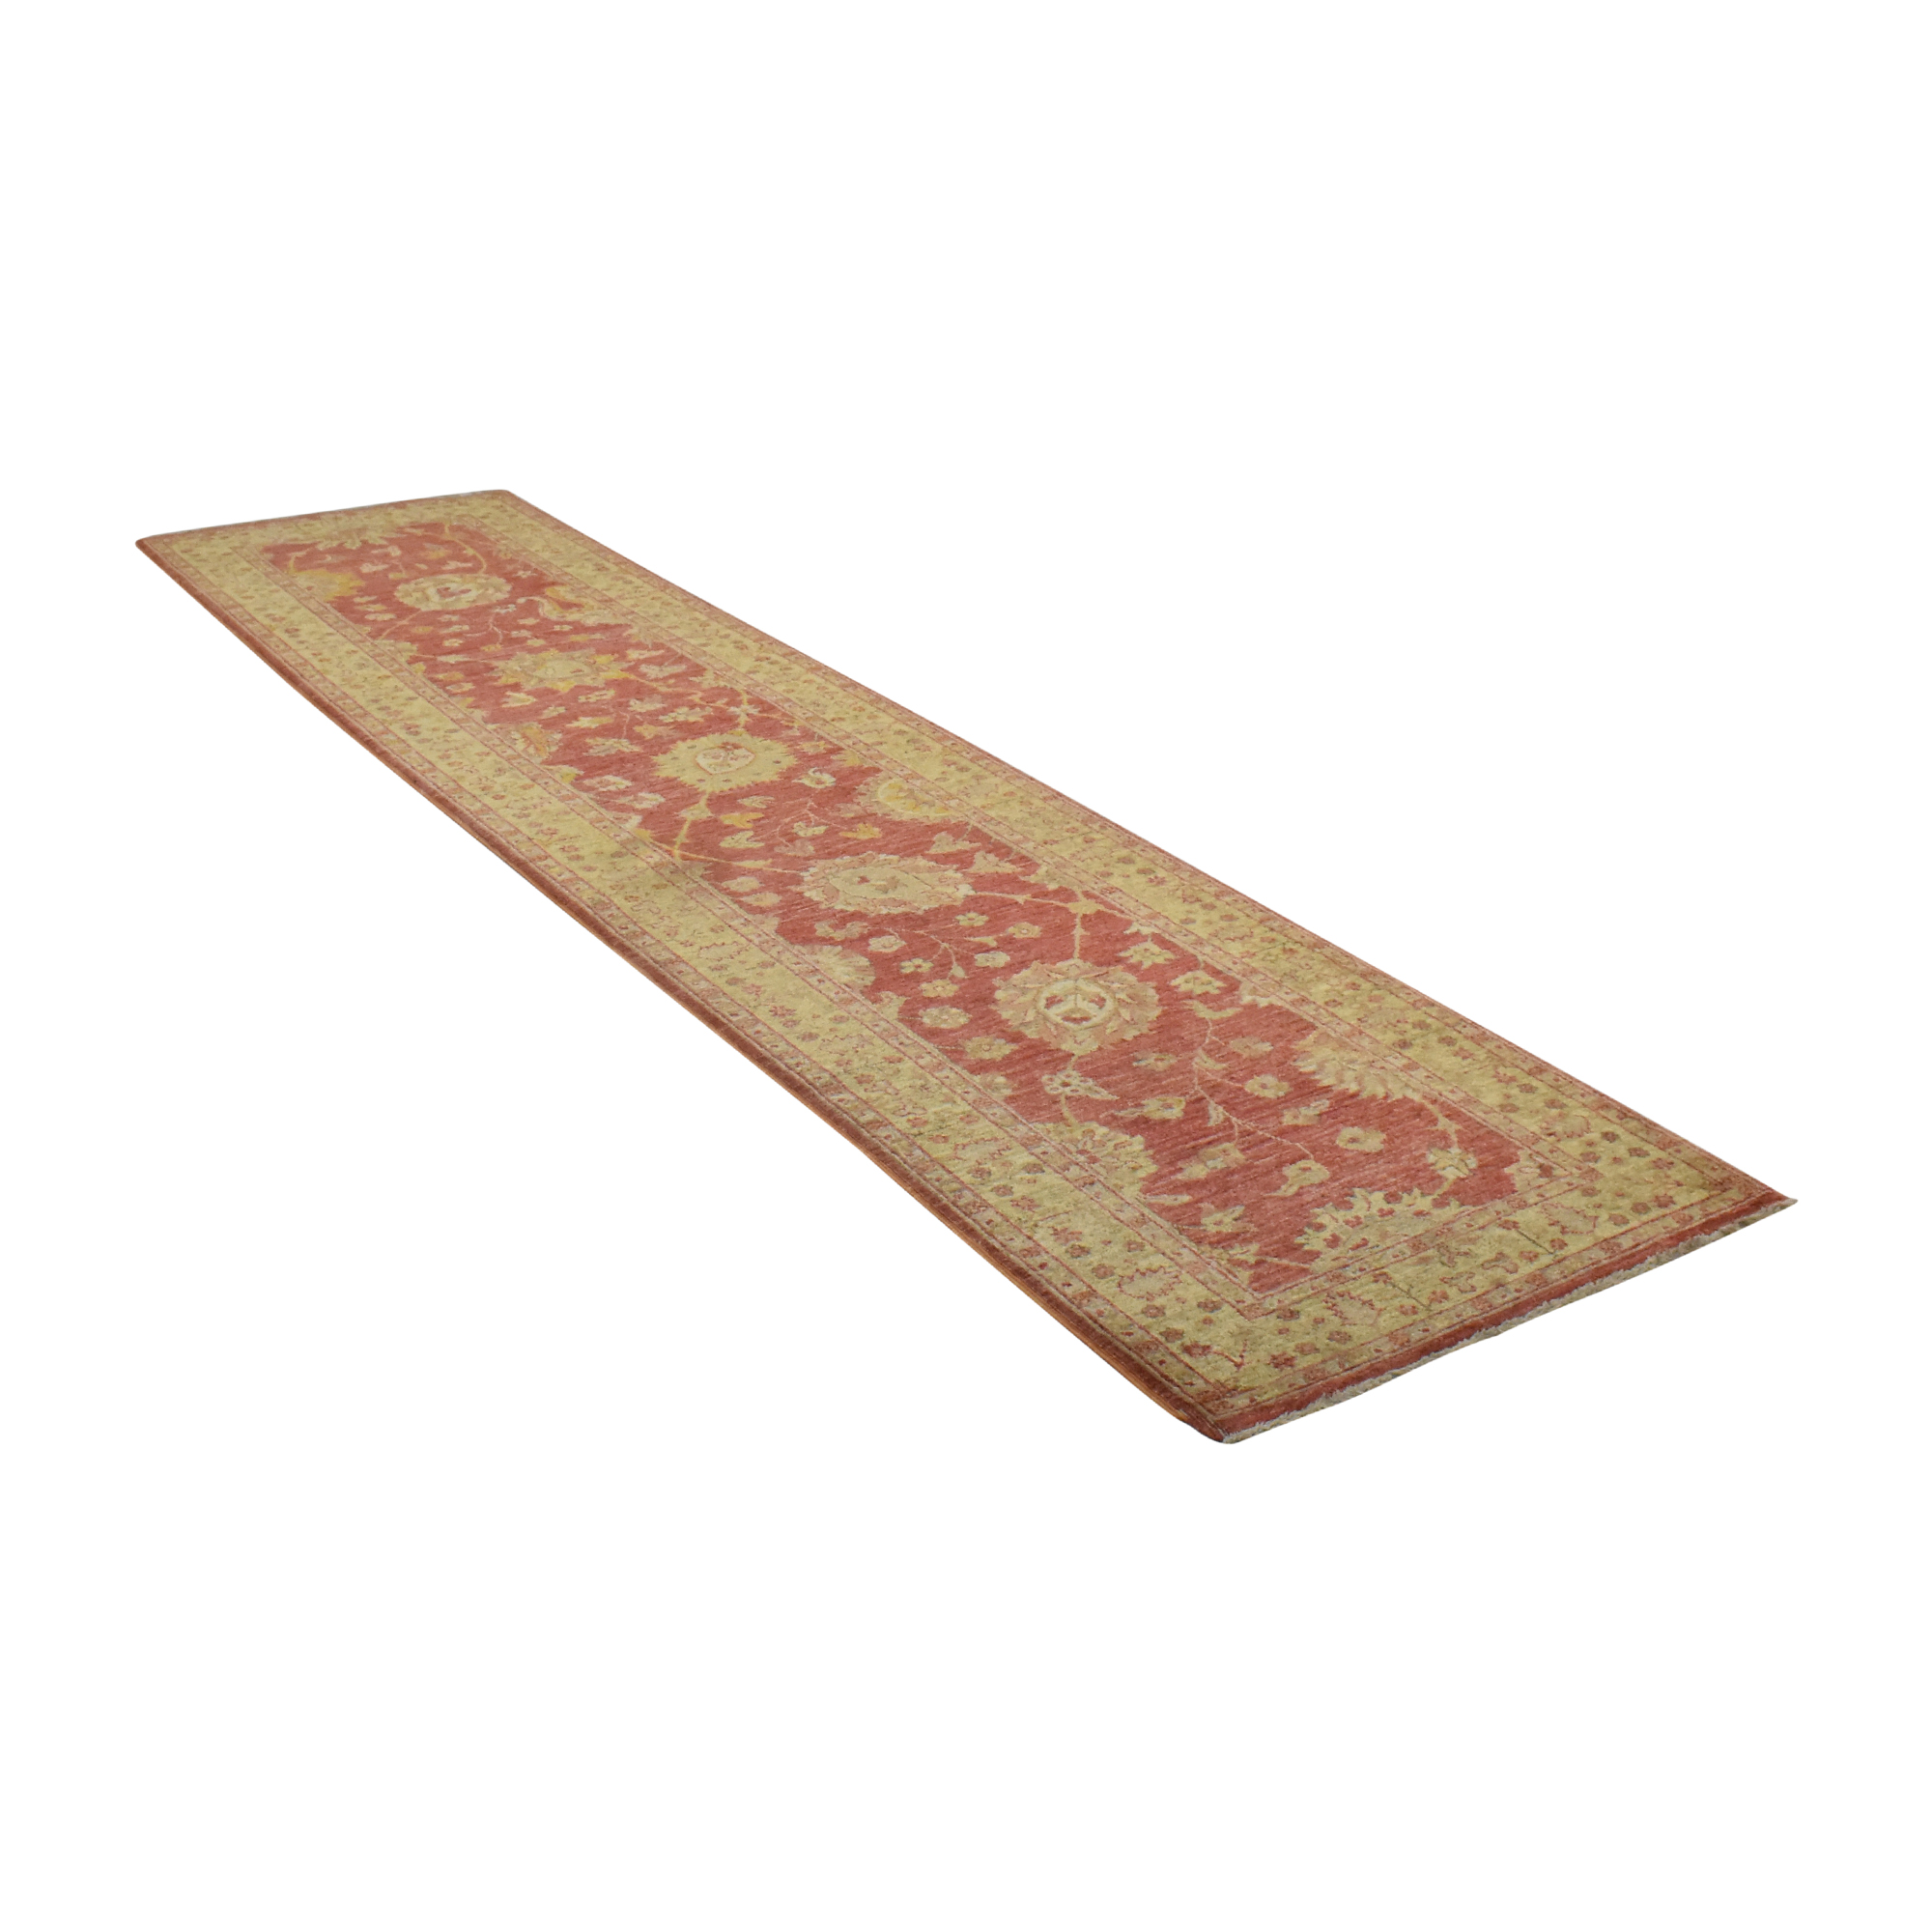 ABC Carpet & Home ABC Carpet & Home Persian Runner nj